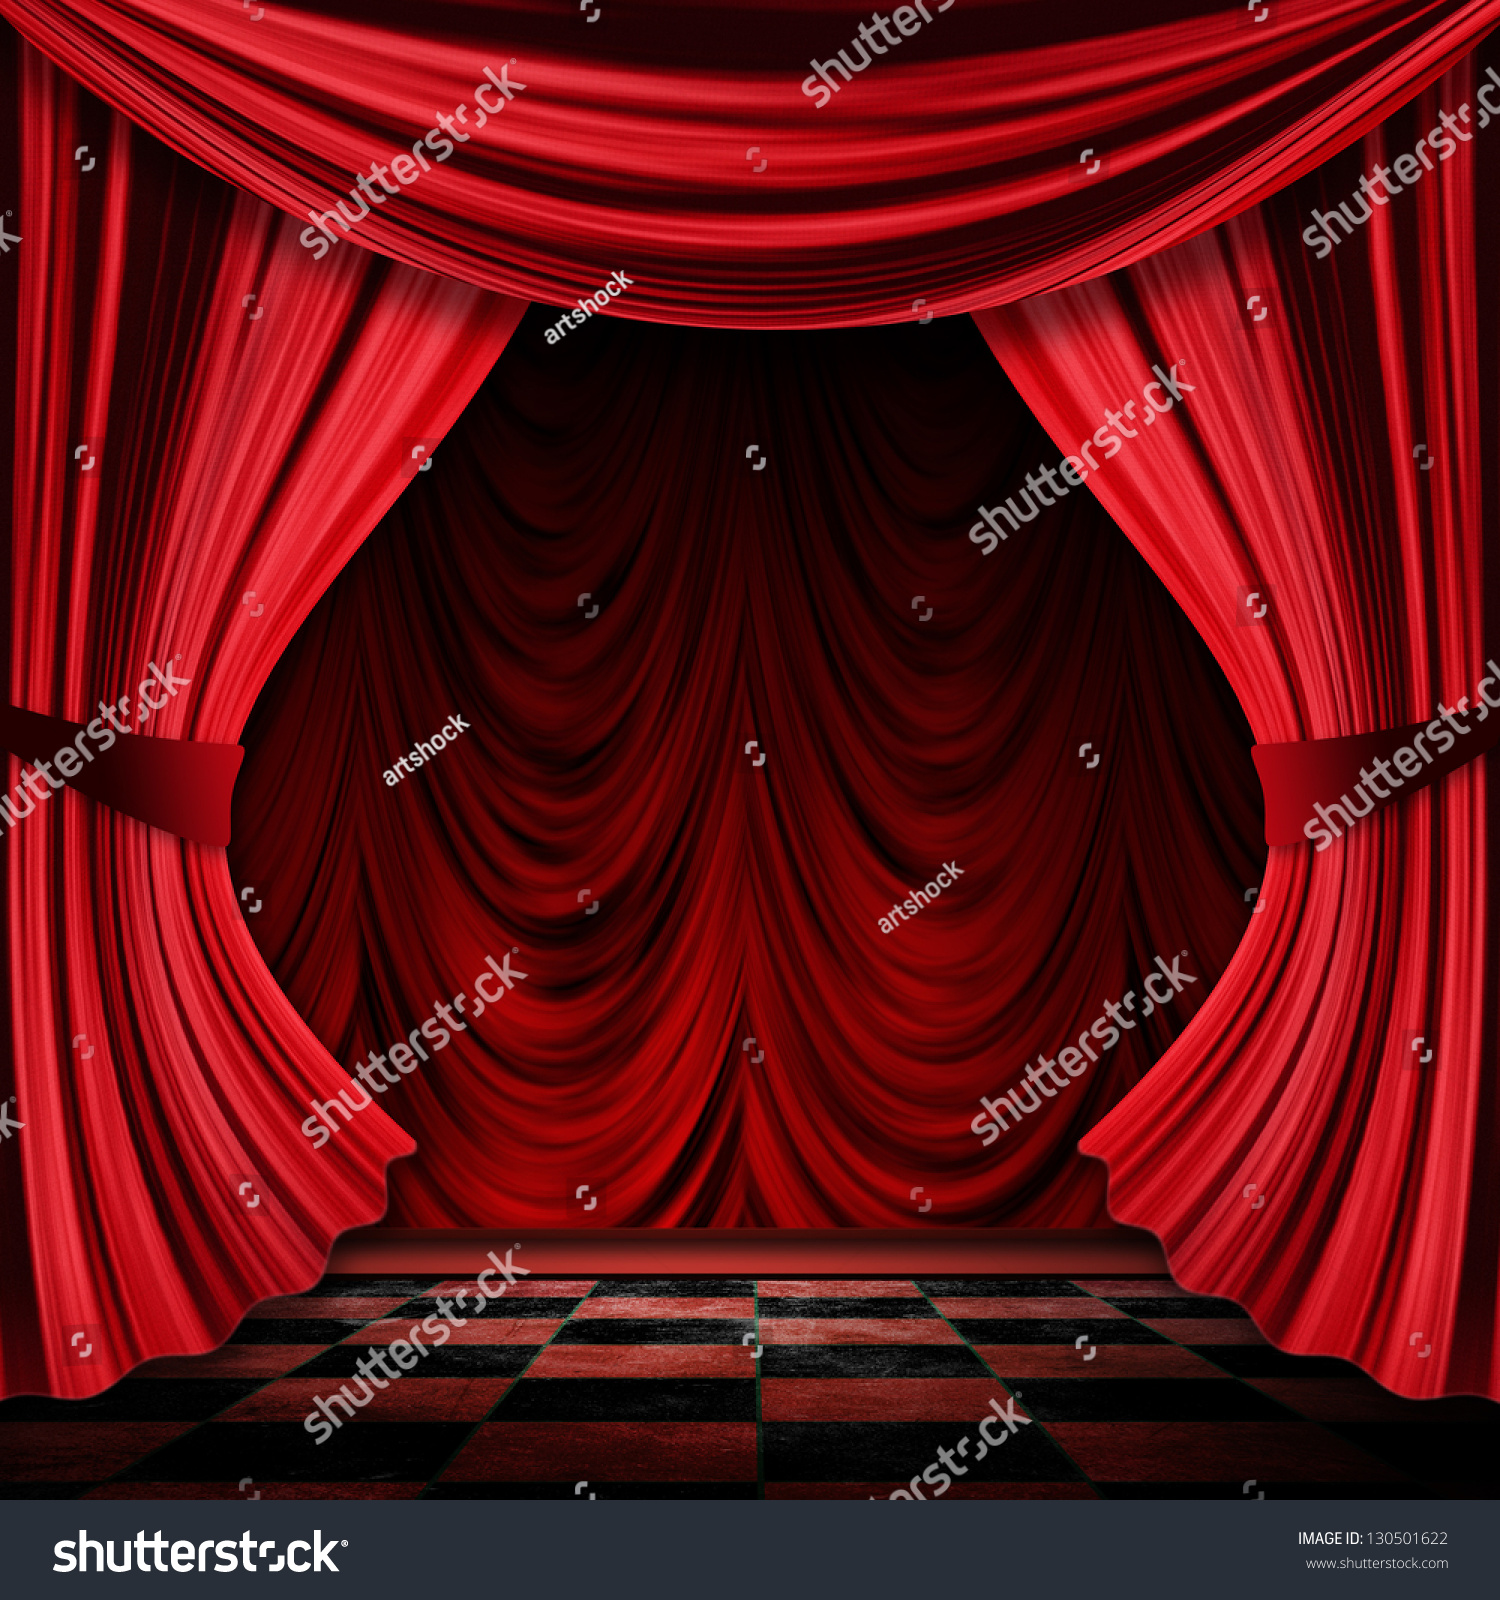 Stock photo dramatic red old fashioned elegant theater stage stock - Close View Of Vintage Decorative Red Theater Stage Curtains